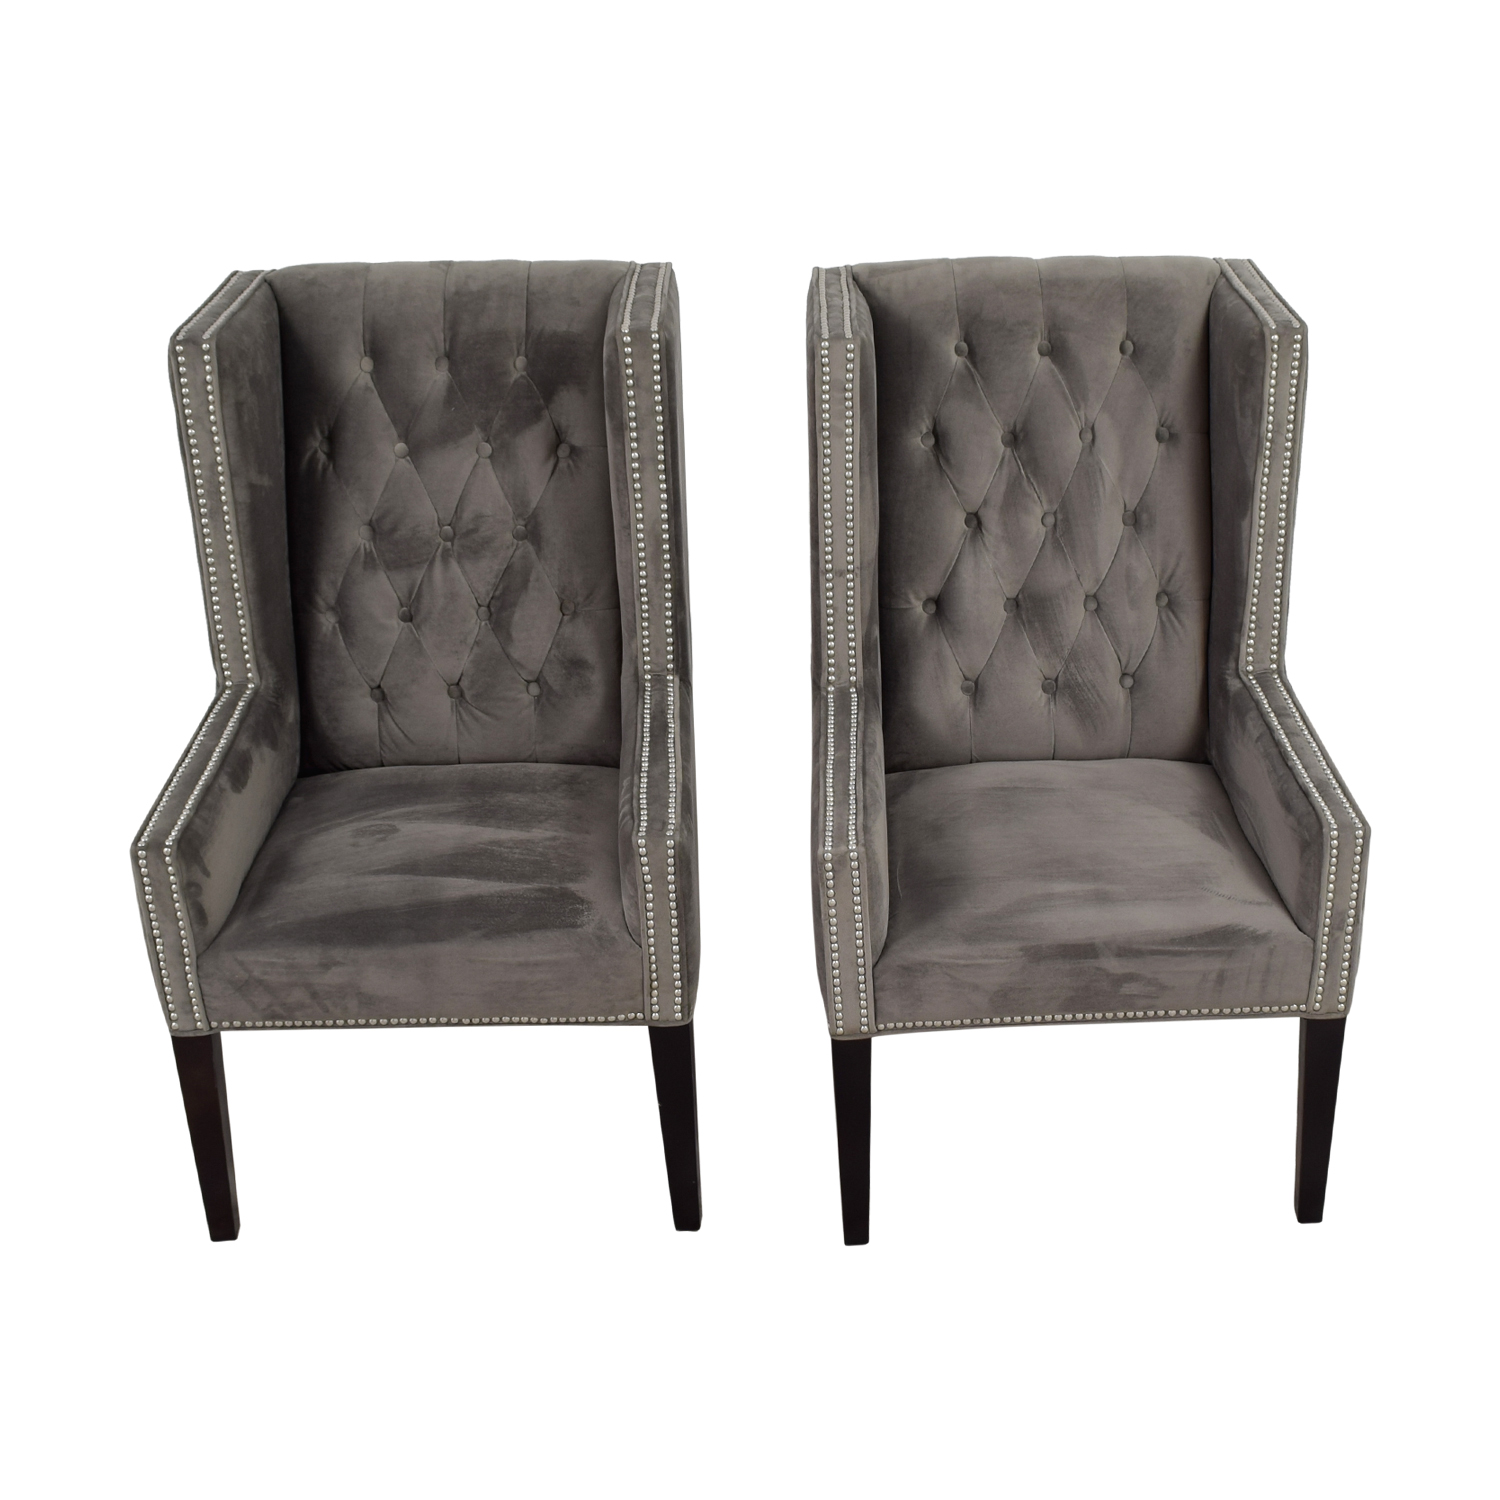 Z Gallerie Z Gallerie Logan Grey Tufted Wing Chairs